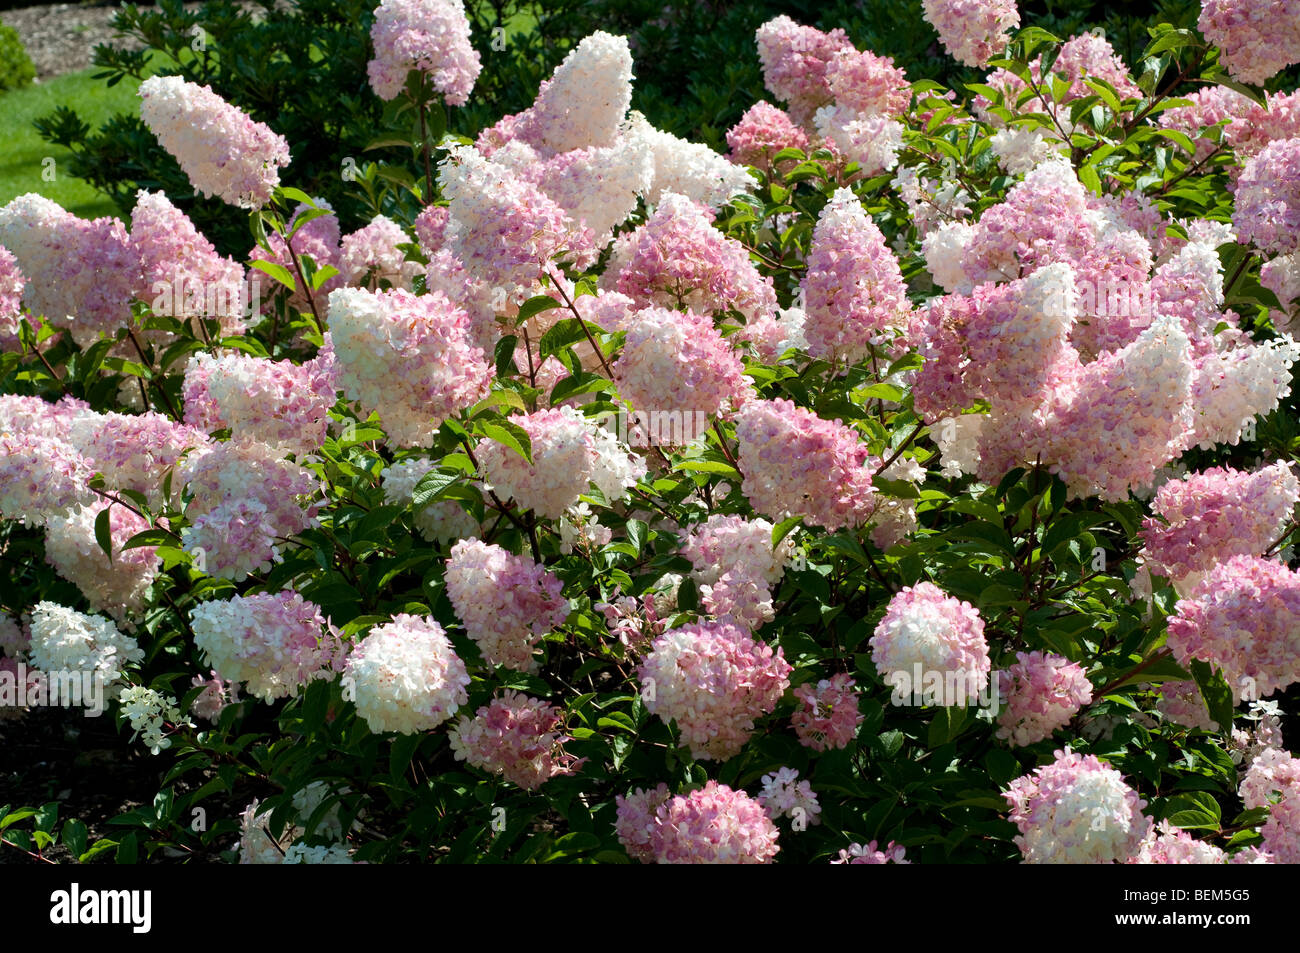 hydrangea paniculata vanille fraise renhy stock photo. Black Bedroom Furniture Sets. Home Design Ideas